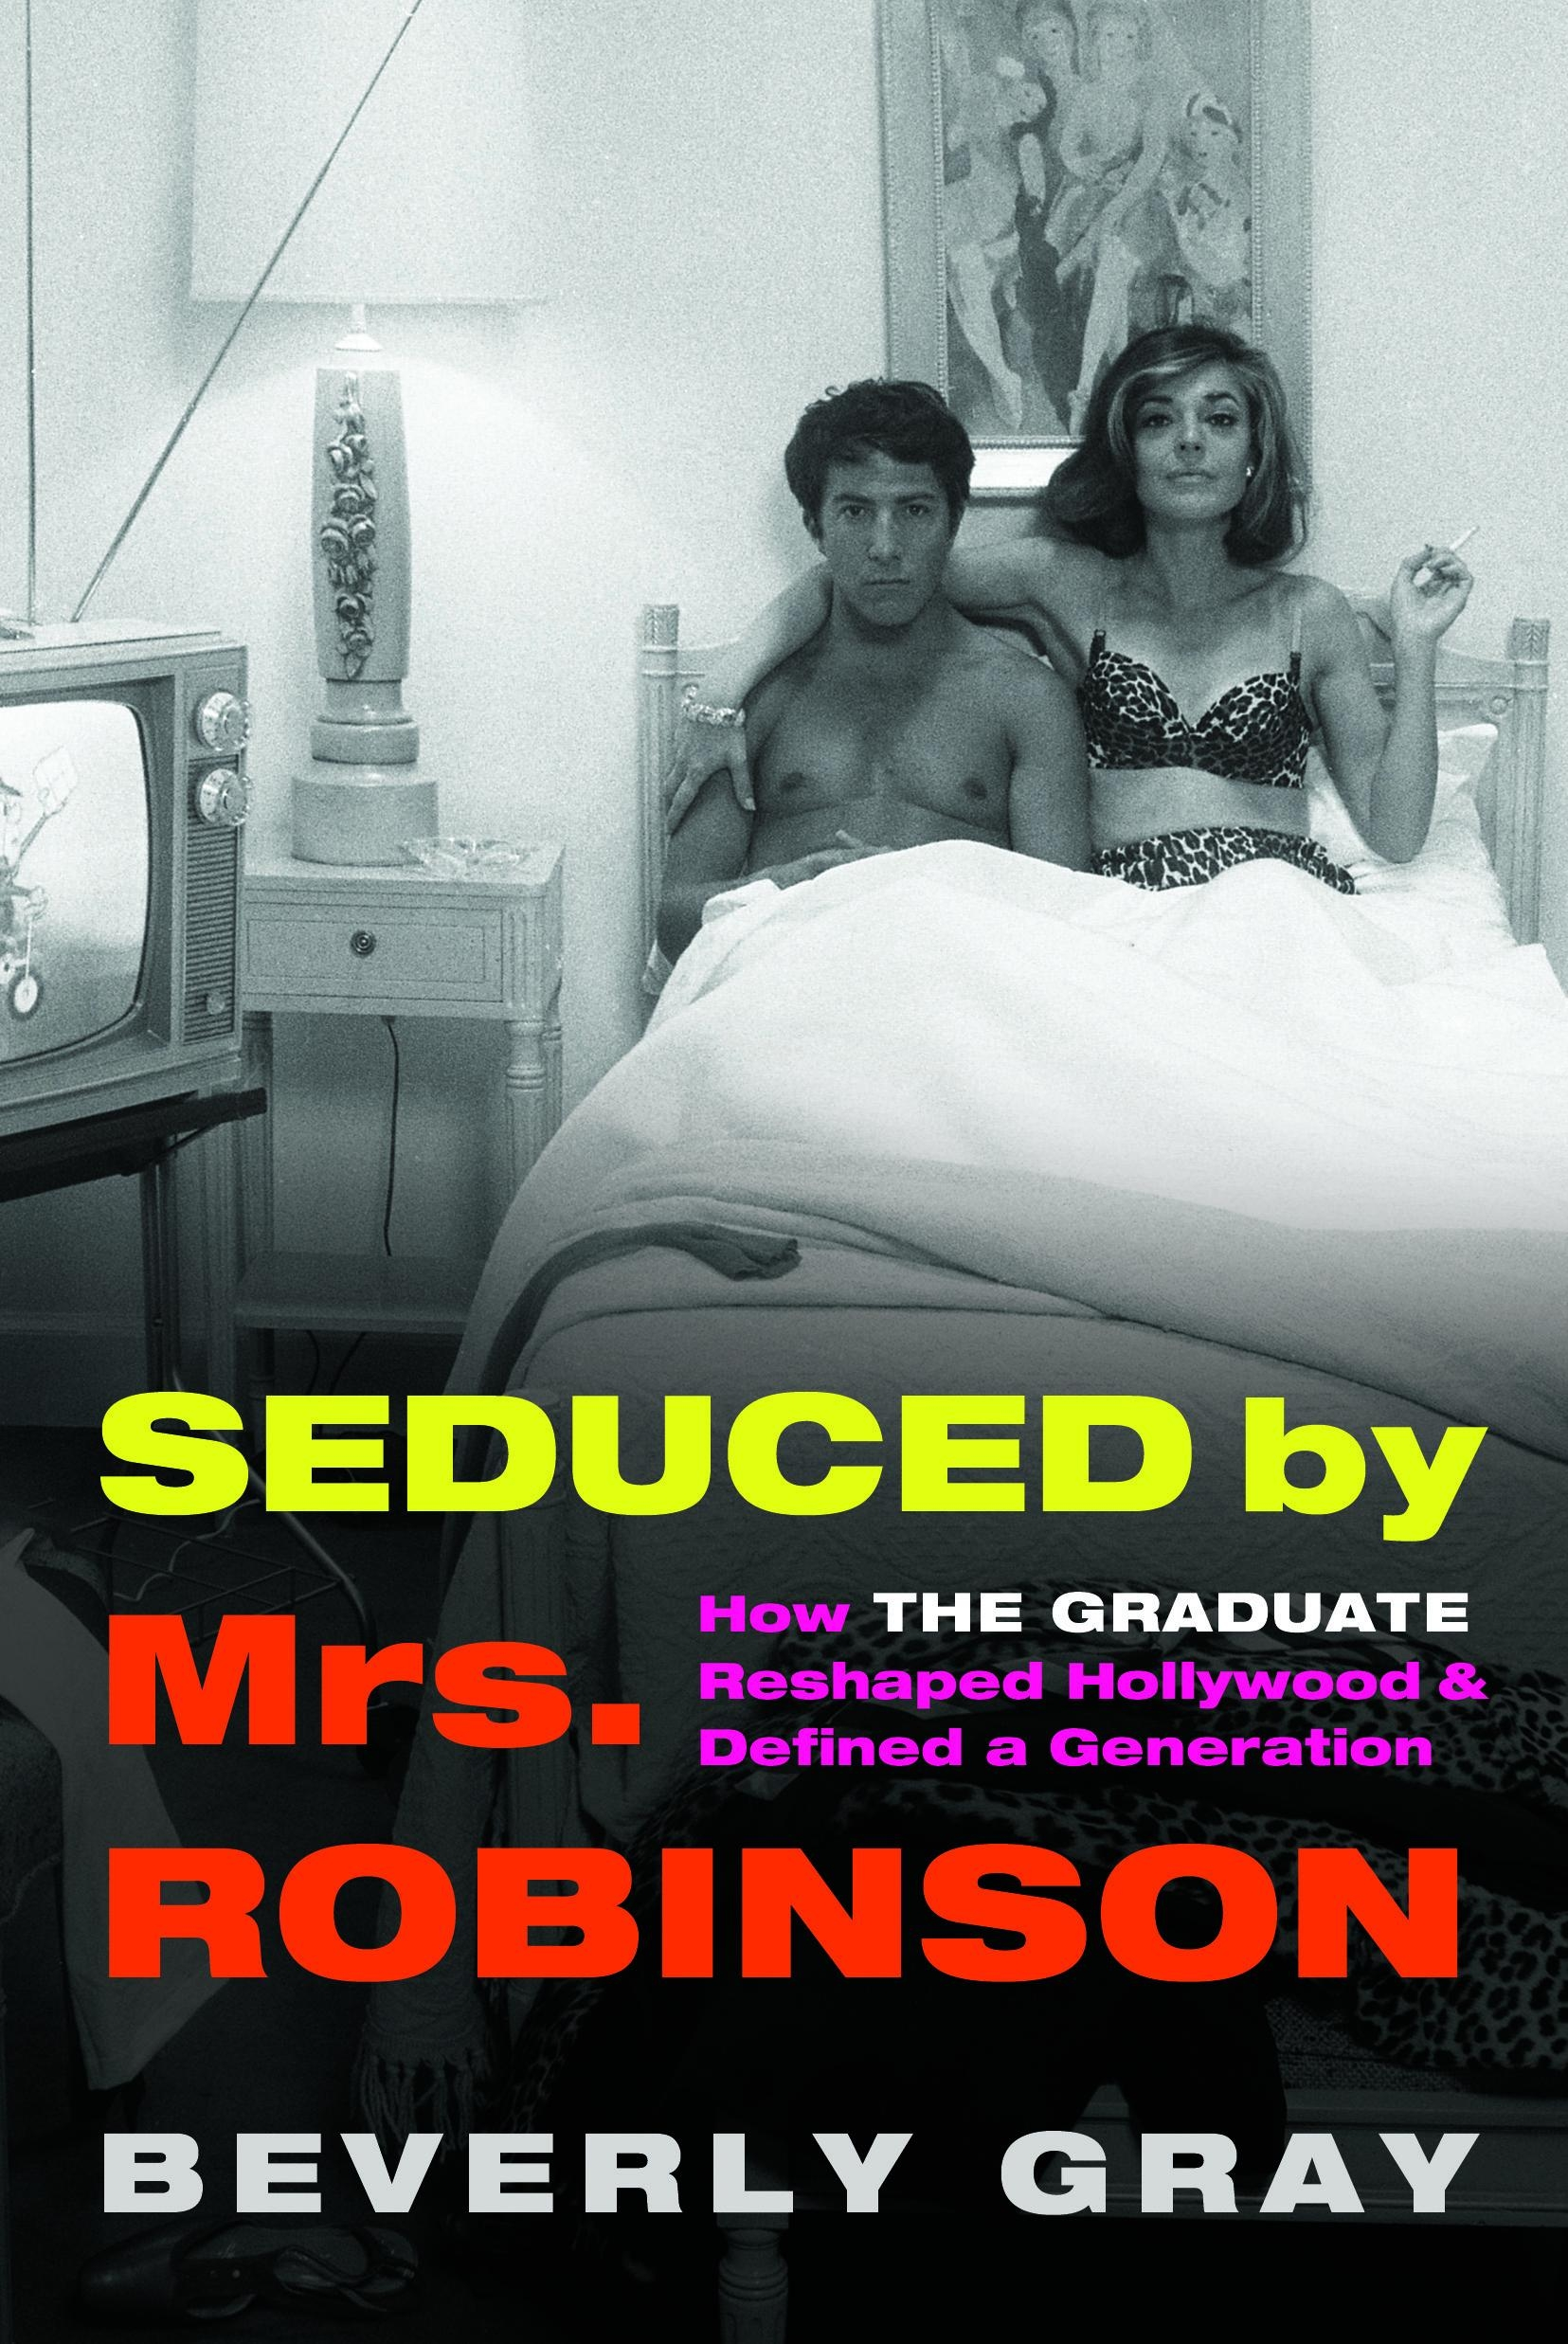 Seduced by Mrs Robinson, How the Graduate Reshaped Hollywood and Reshaped a Generation by Beverly Gray